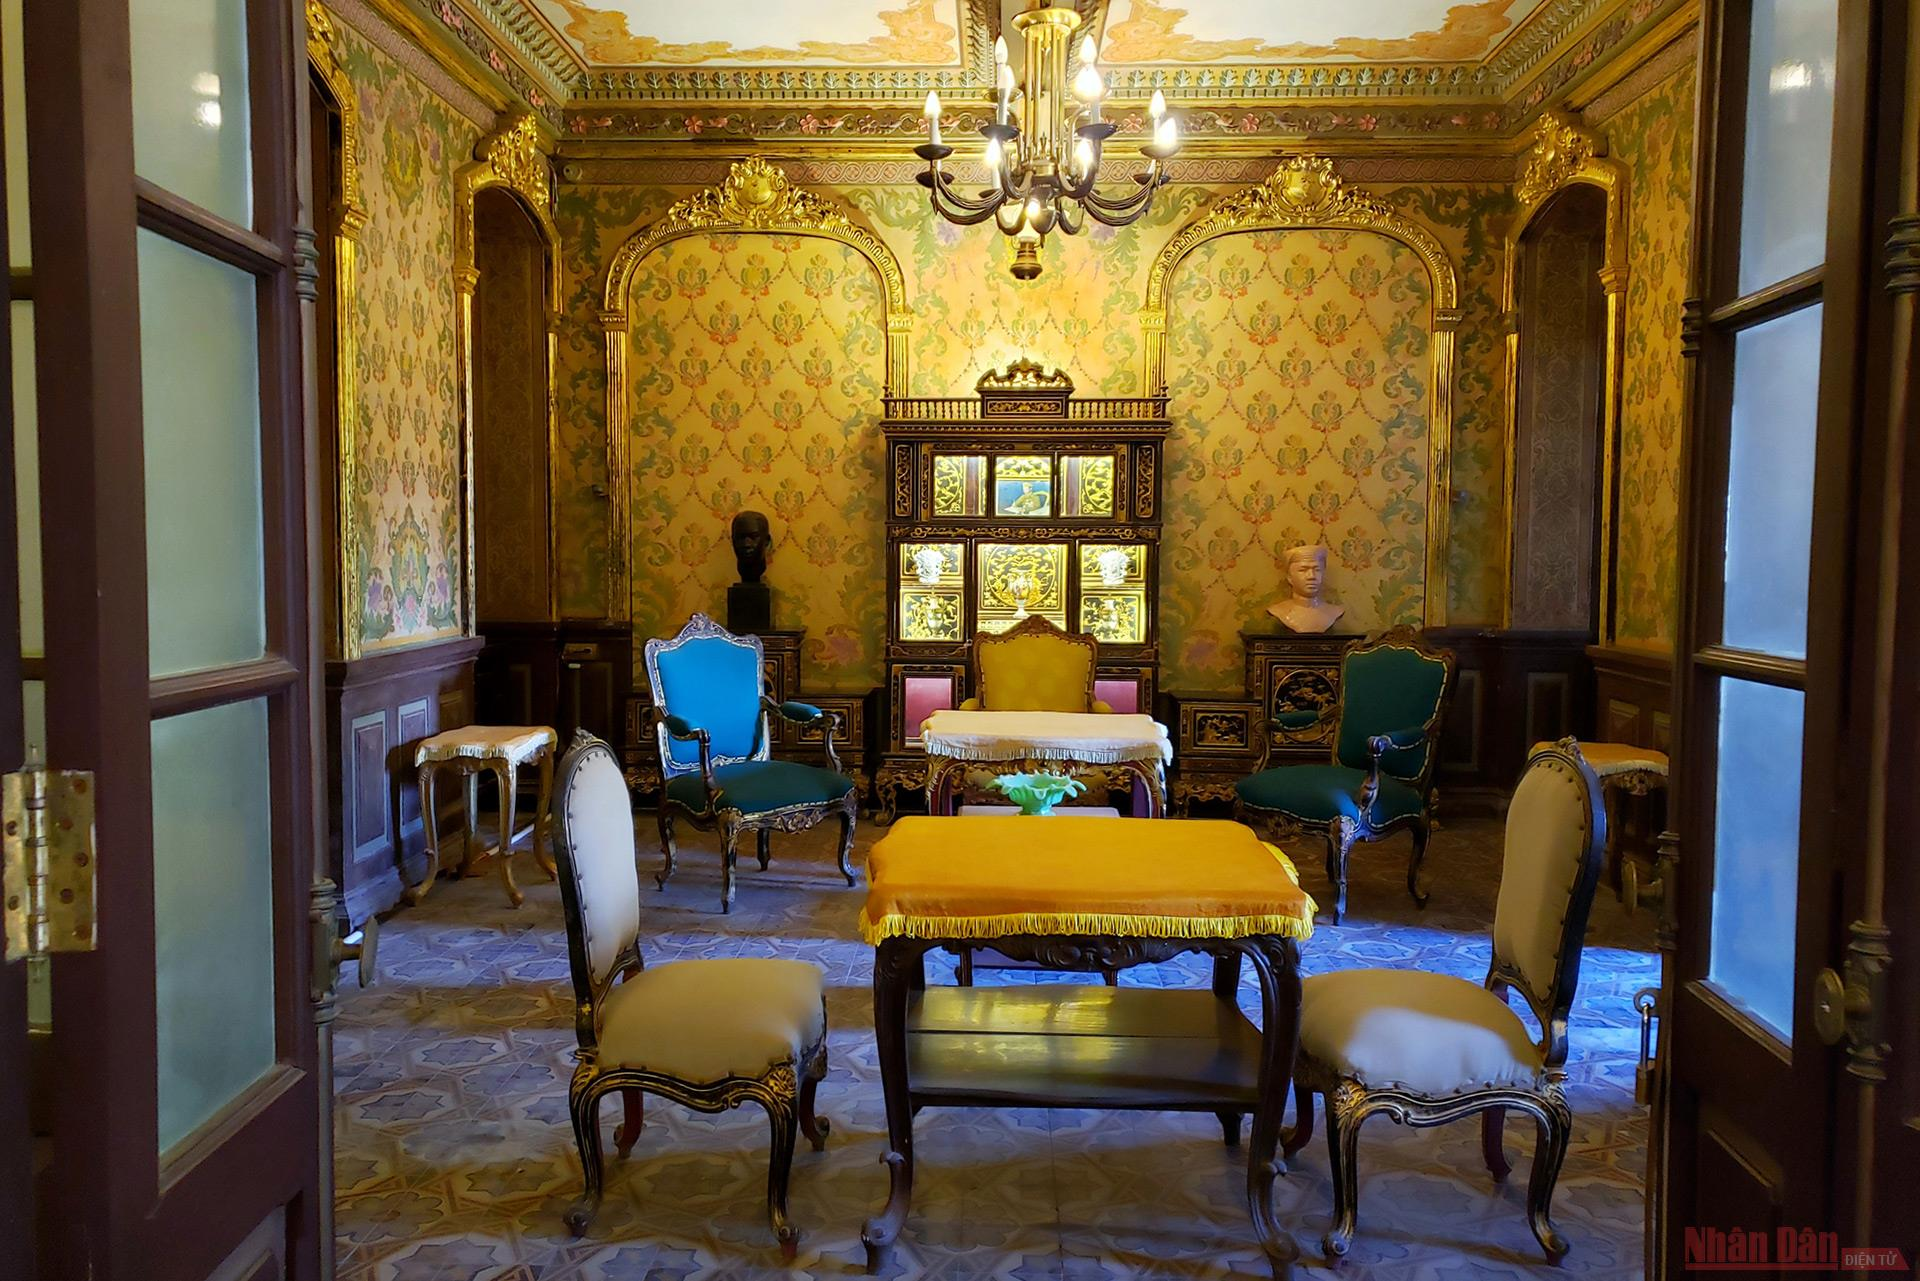 Hue palace, European style meets Asian tradition